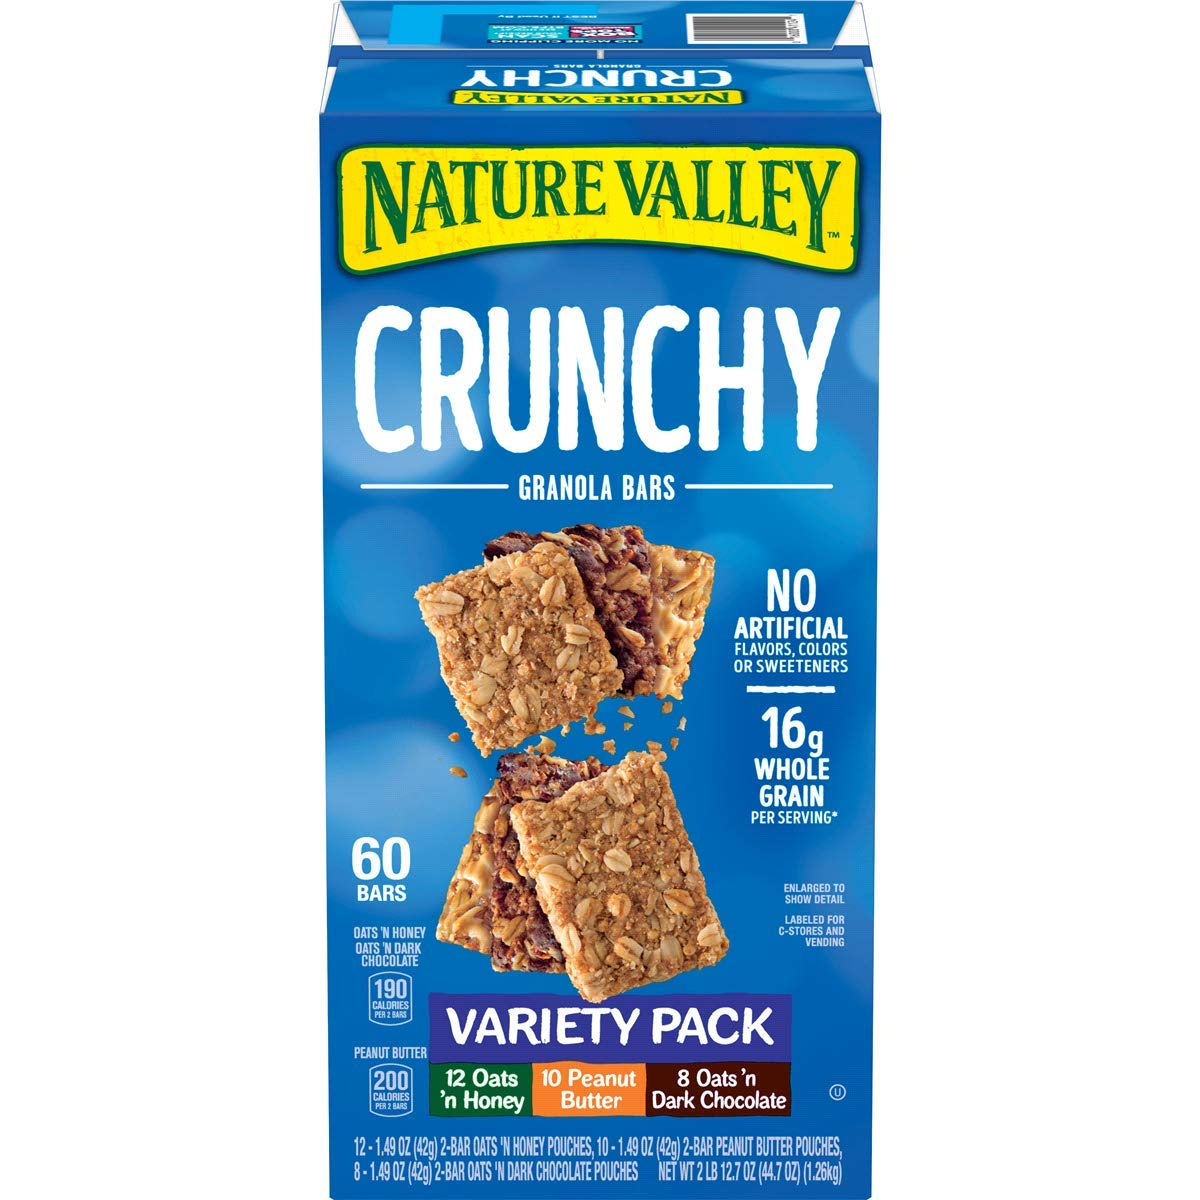 Nature Valley Crunchy Granola Bar Variety Pack, 44.8 Ounce